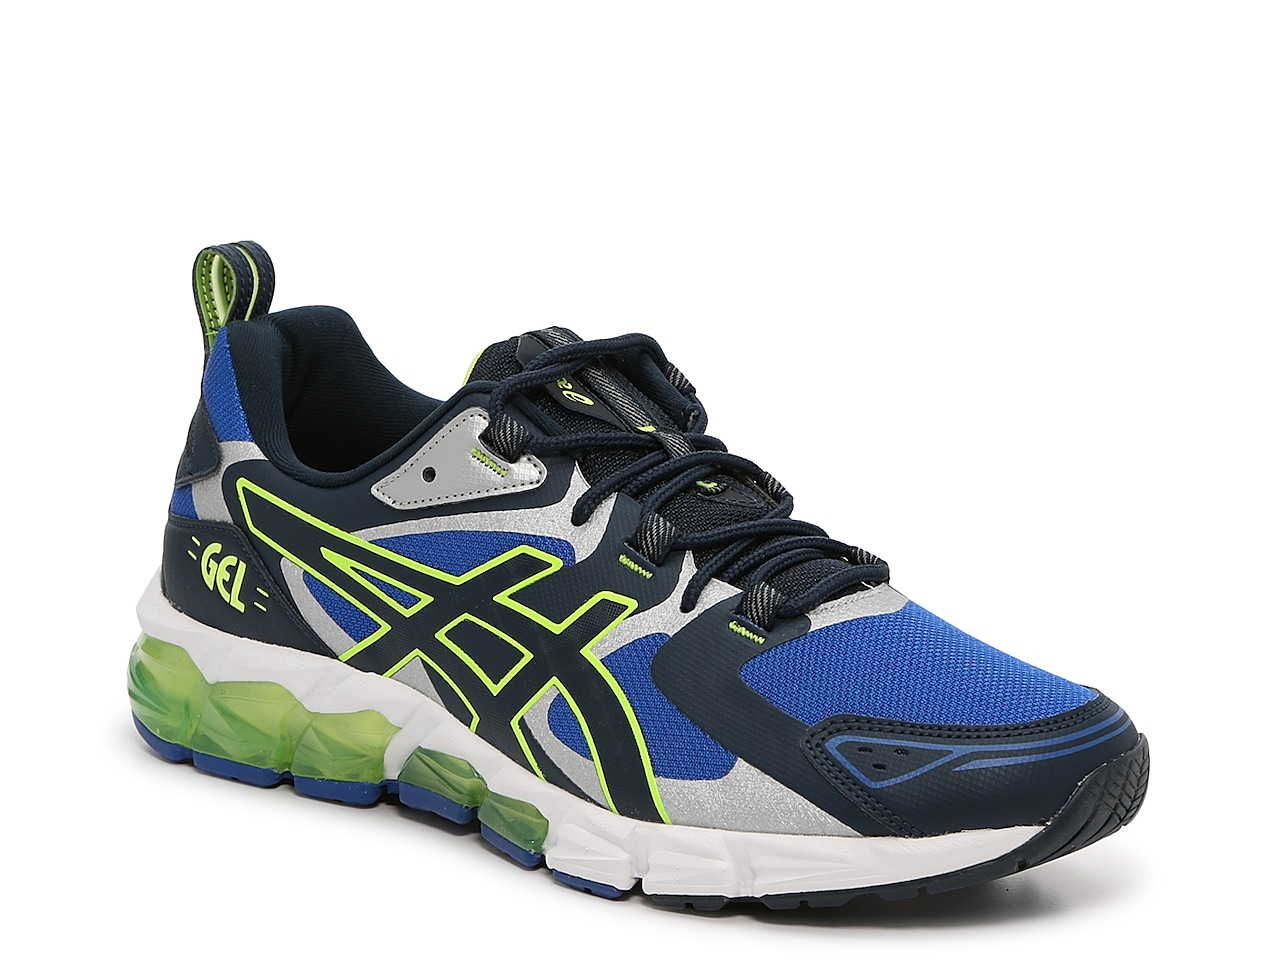 GEL-Quantum 180 6 Running Shoe - Men's